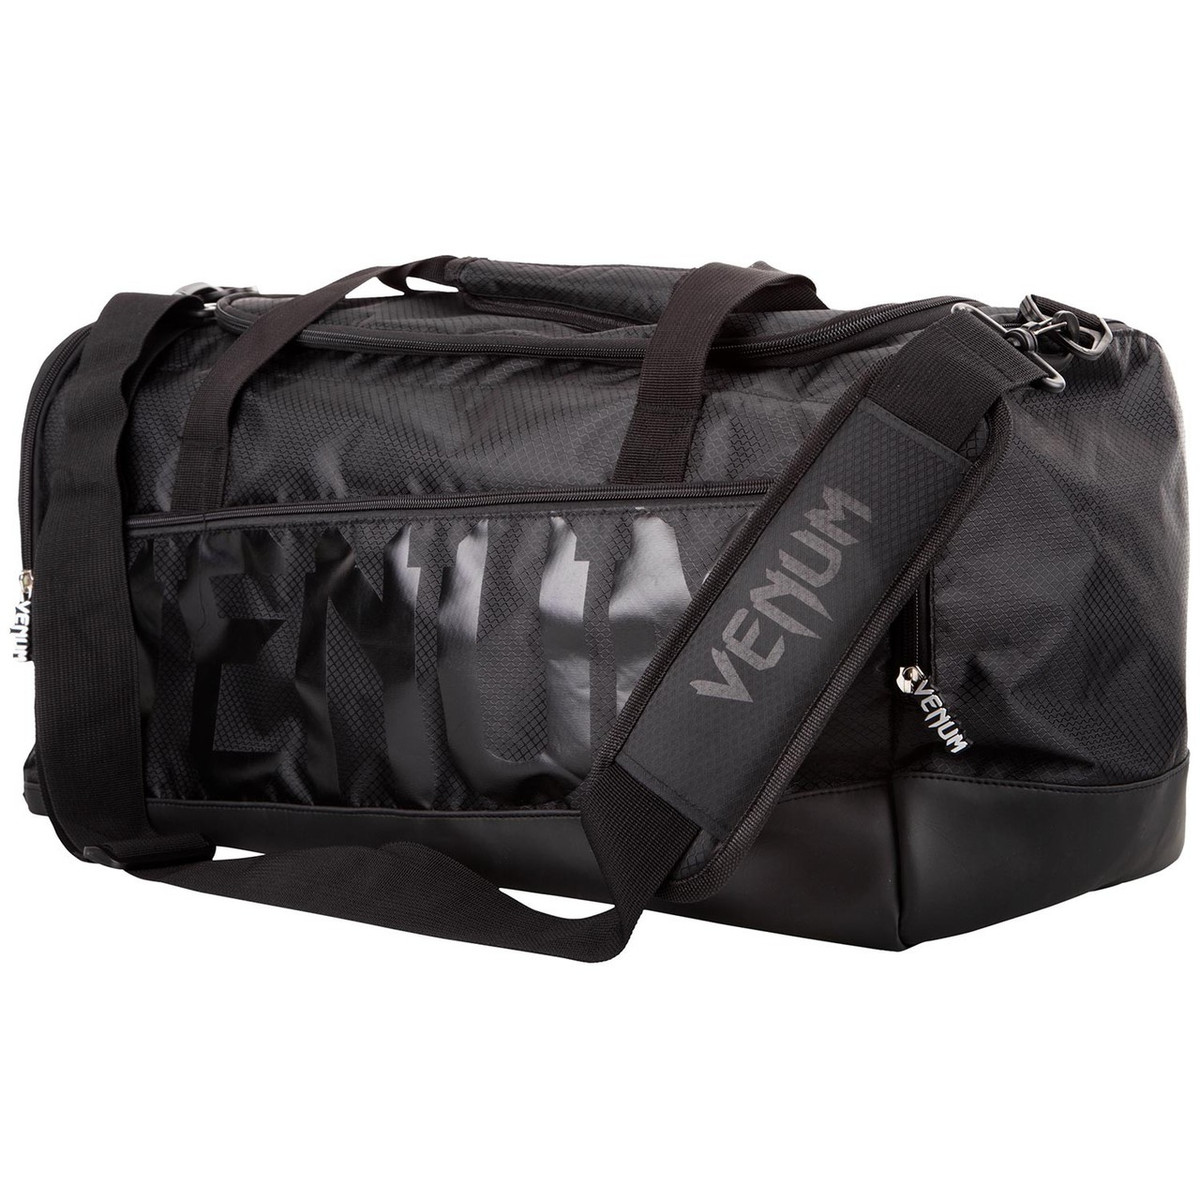 Venum Sparring Sports Bag for Boxers